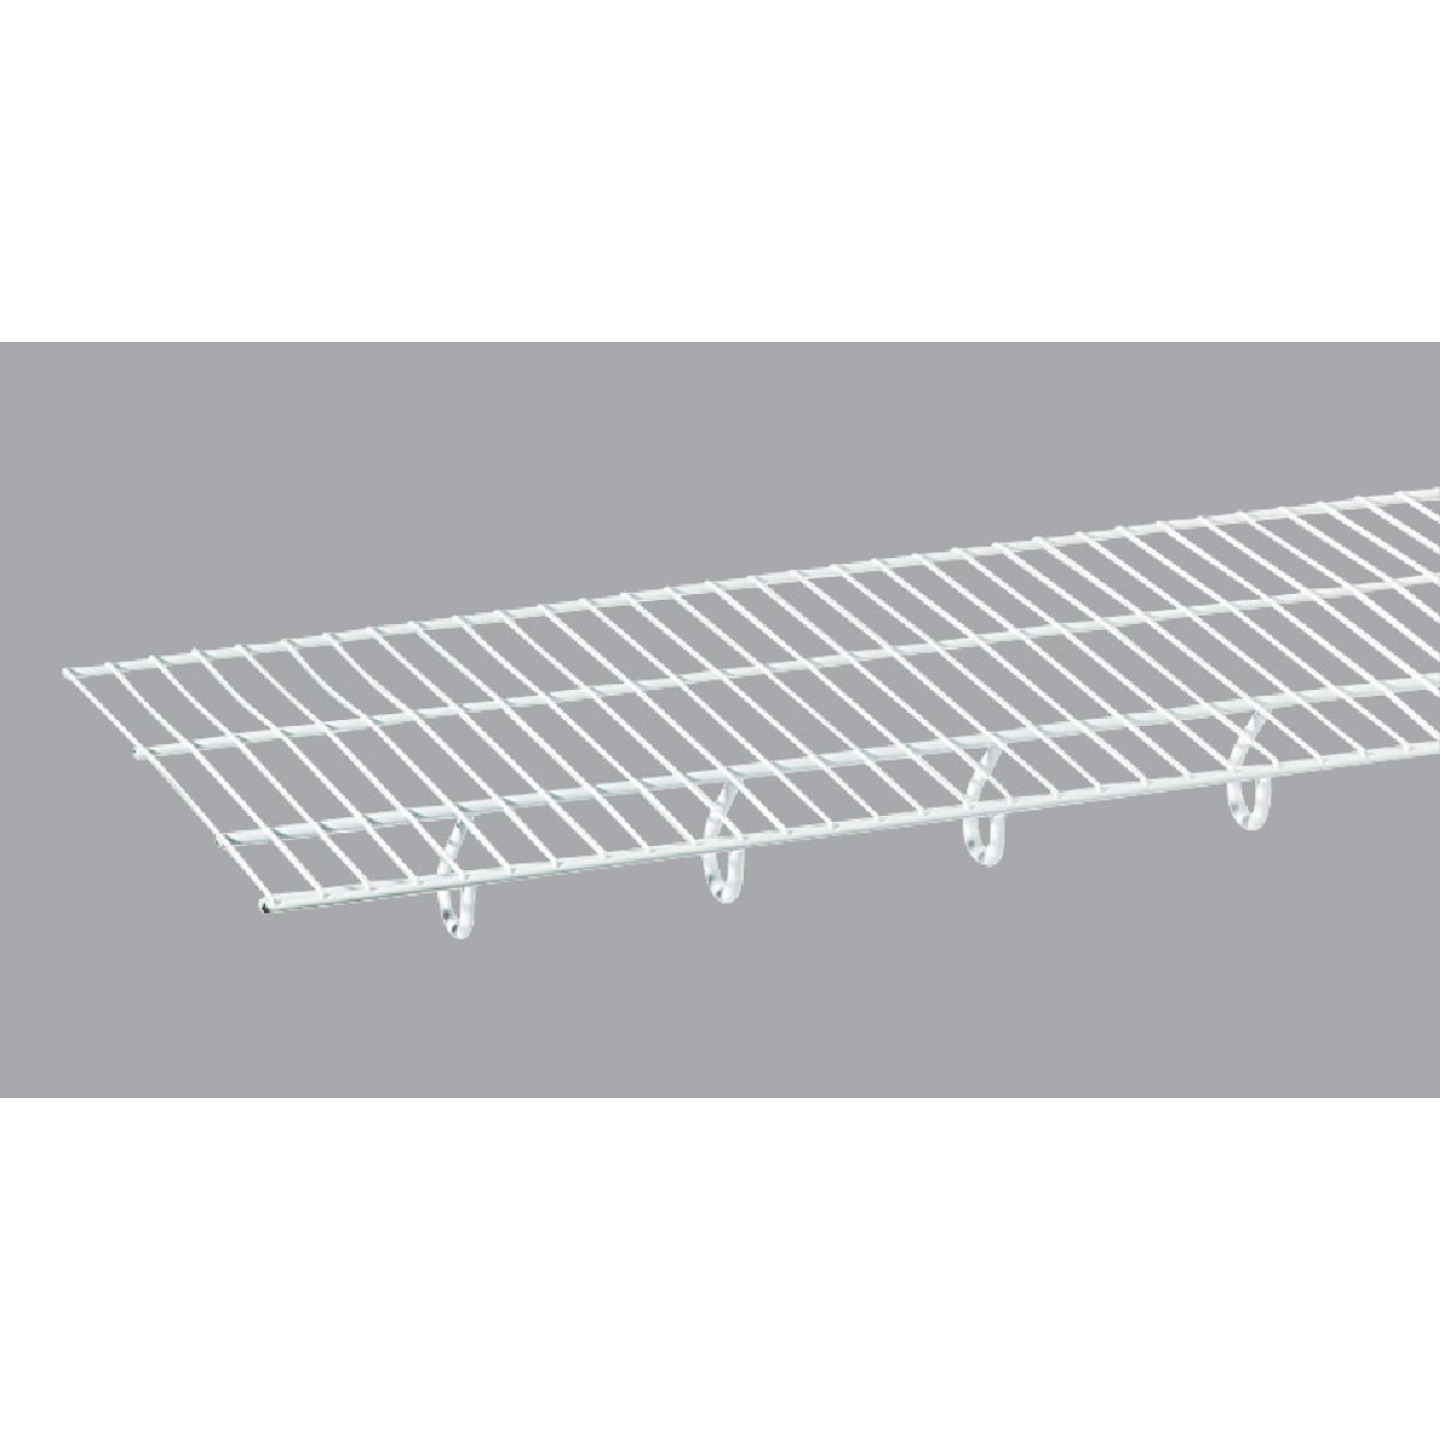 ClosetMaid TotalSlide 12 Ft. W. x 12 In. D. Contractor Pack Ventilated Wire Shelf & Rod, White (6-Pack) Image 4